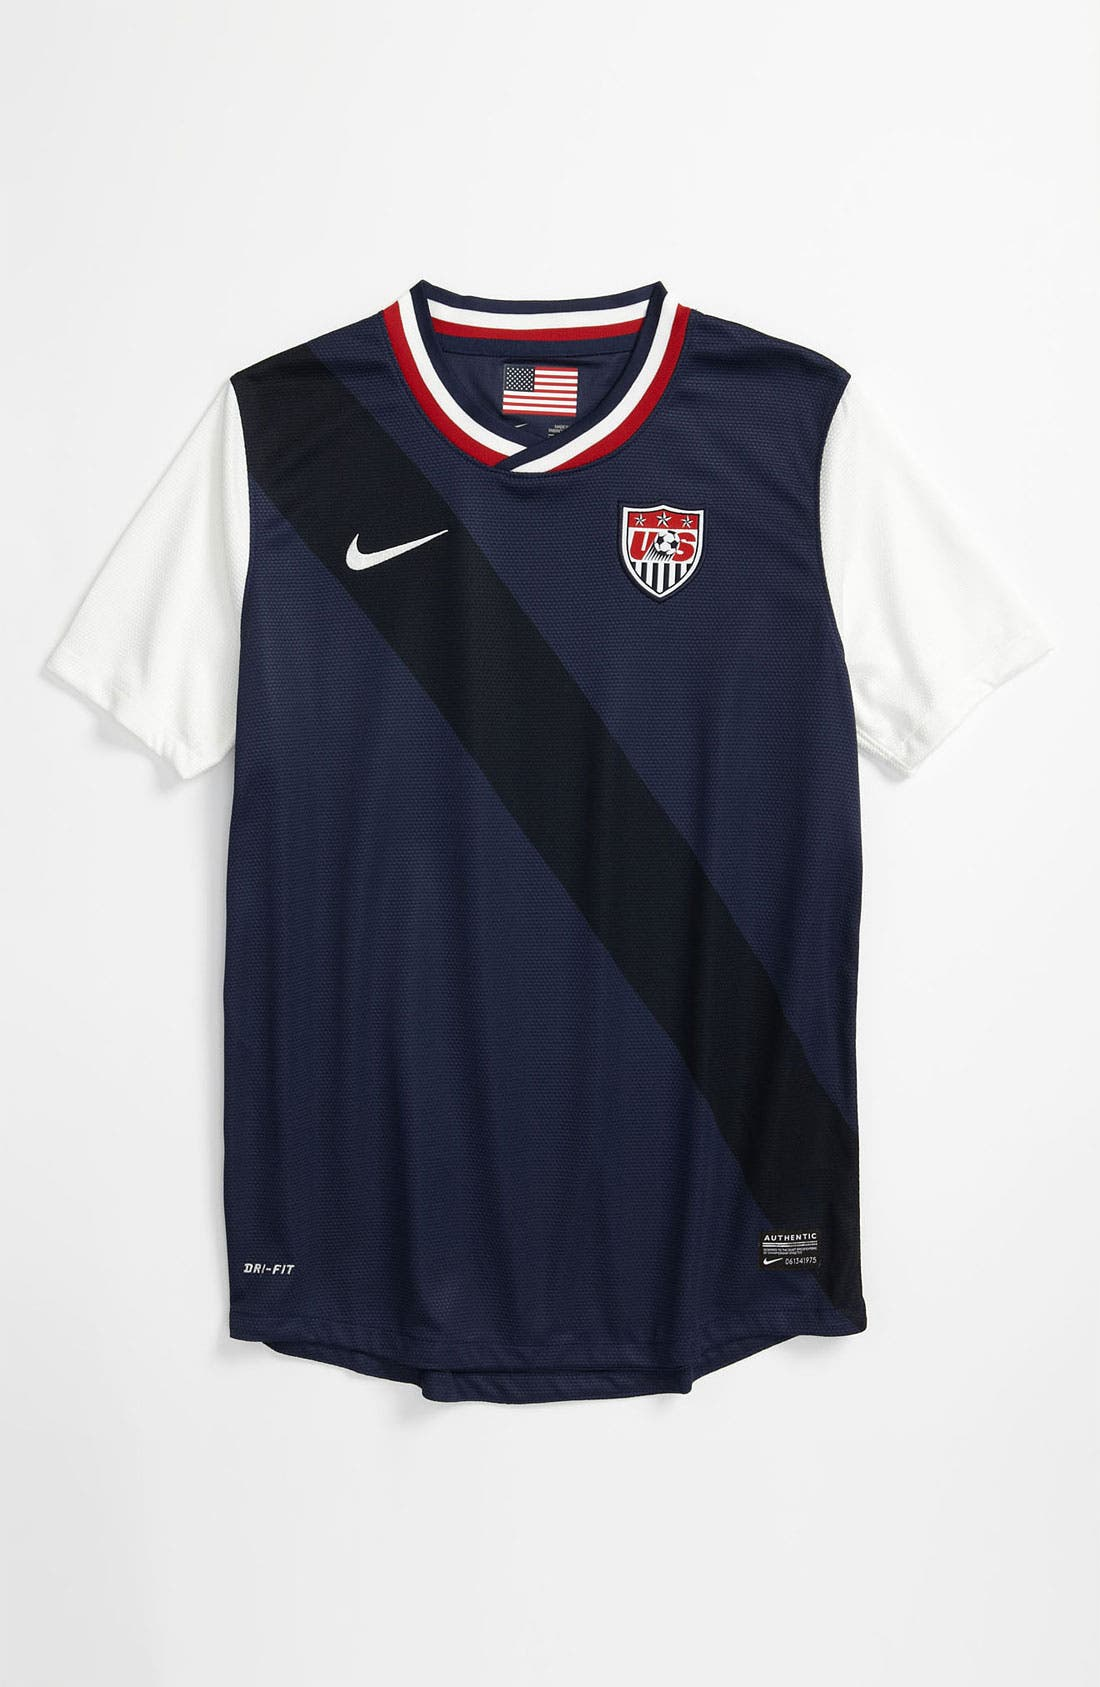 Main Image - Nike 'USA Away' Dri-FIT Jersey (Big Boys)